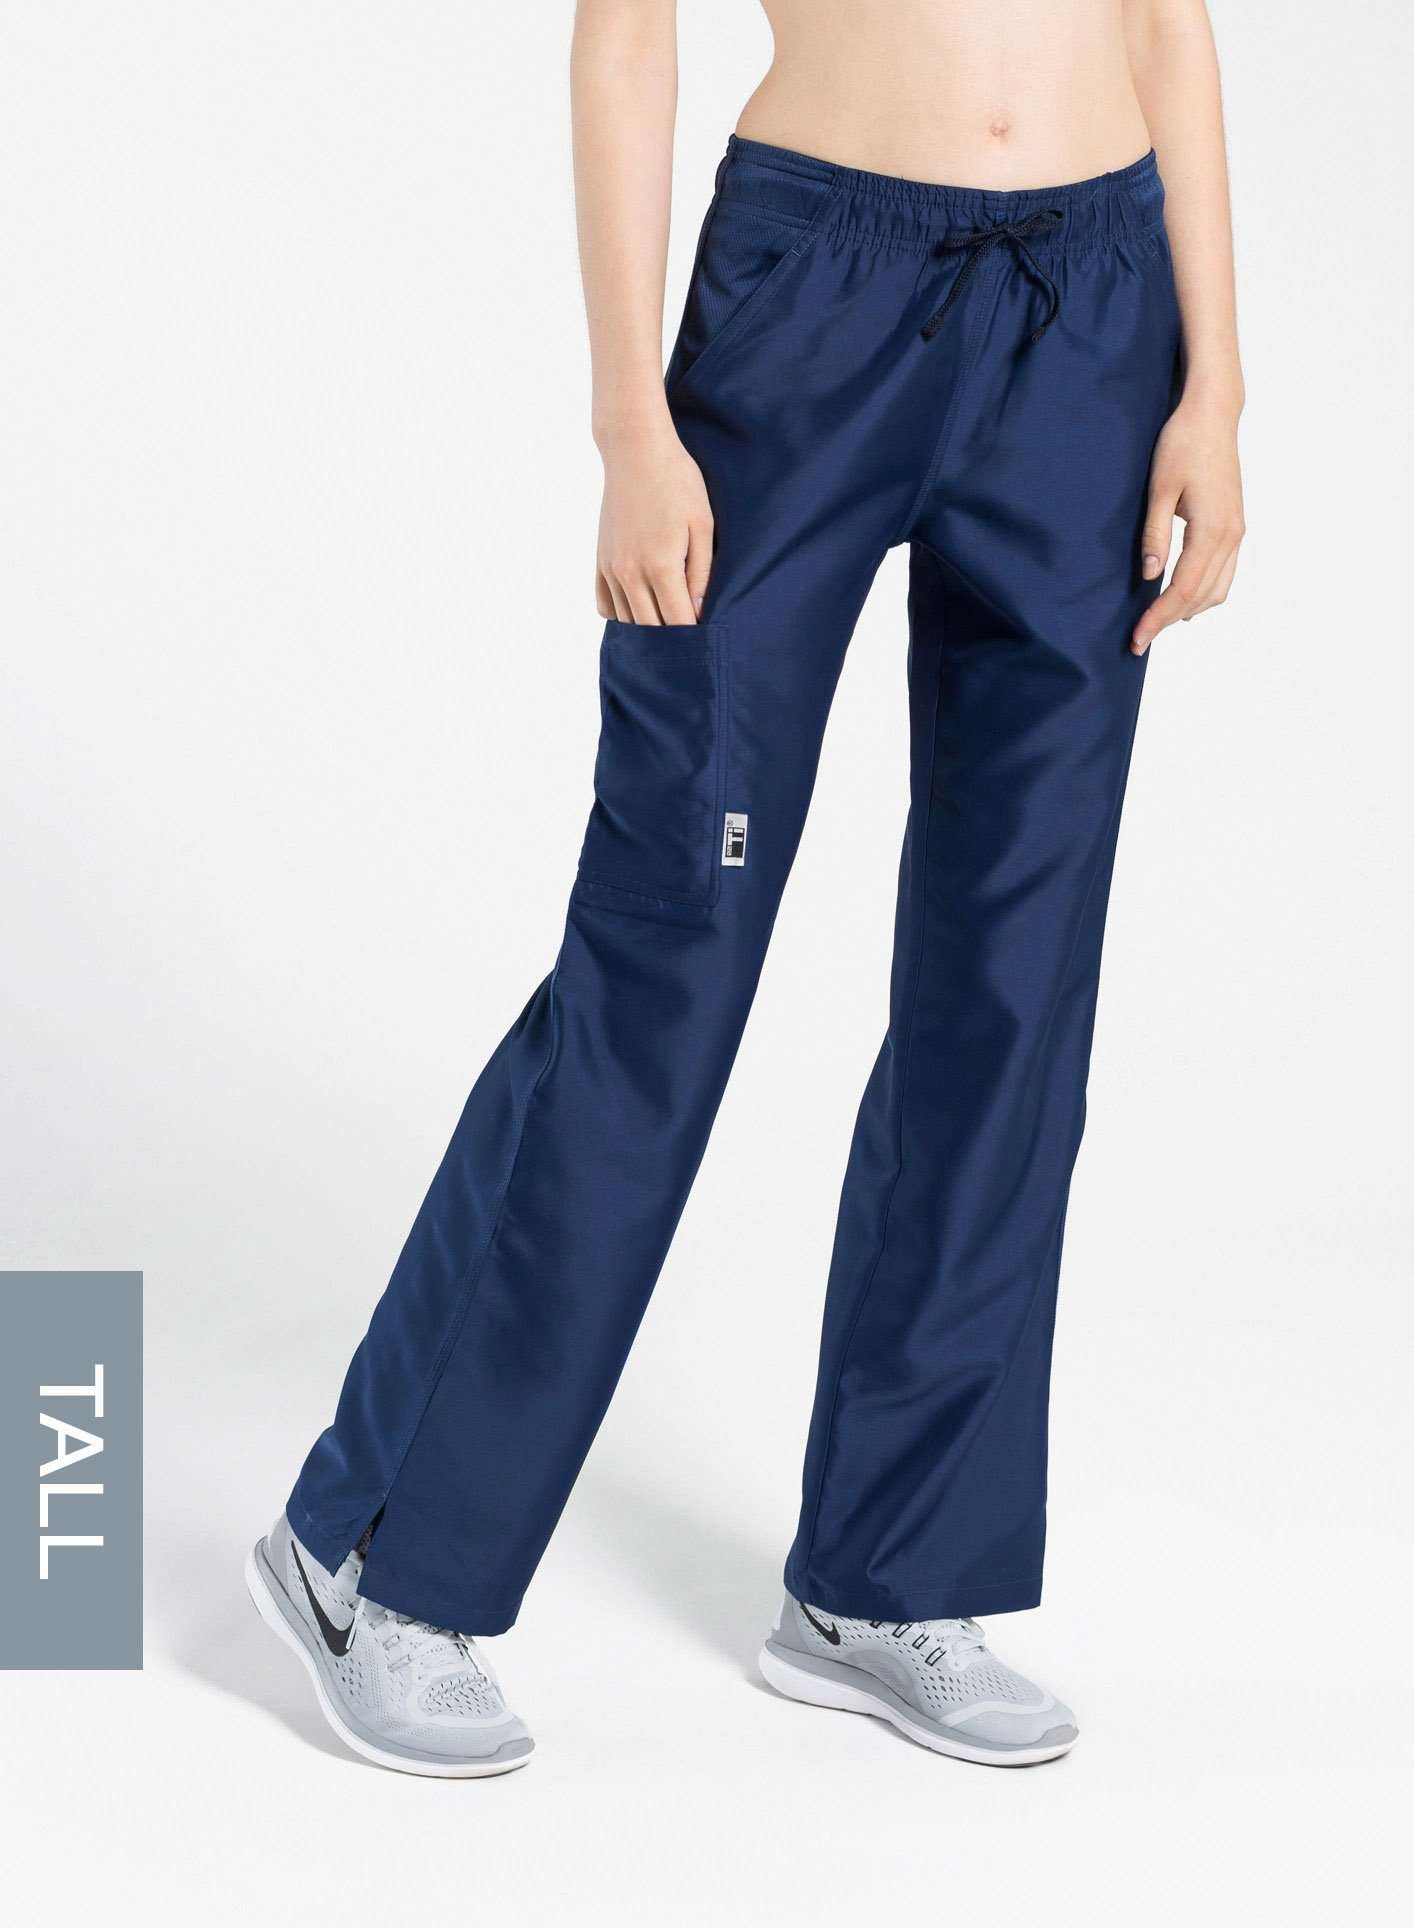 womens tall cargo pocket straight leg scrub pants navy blue Elements front